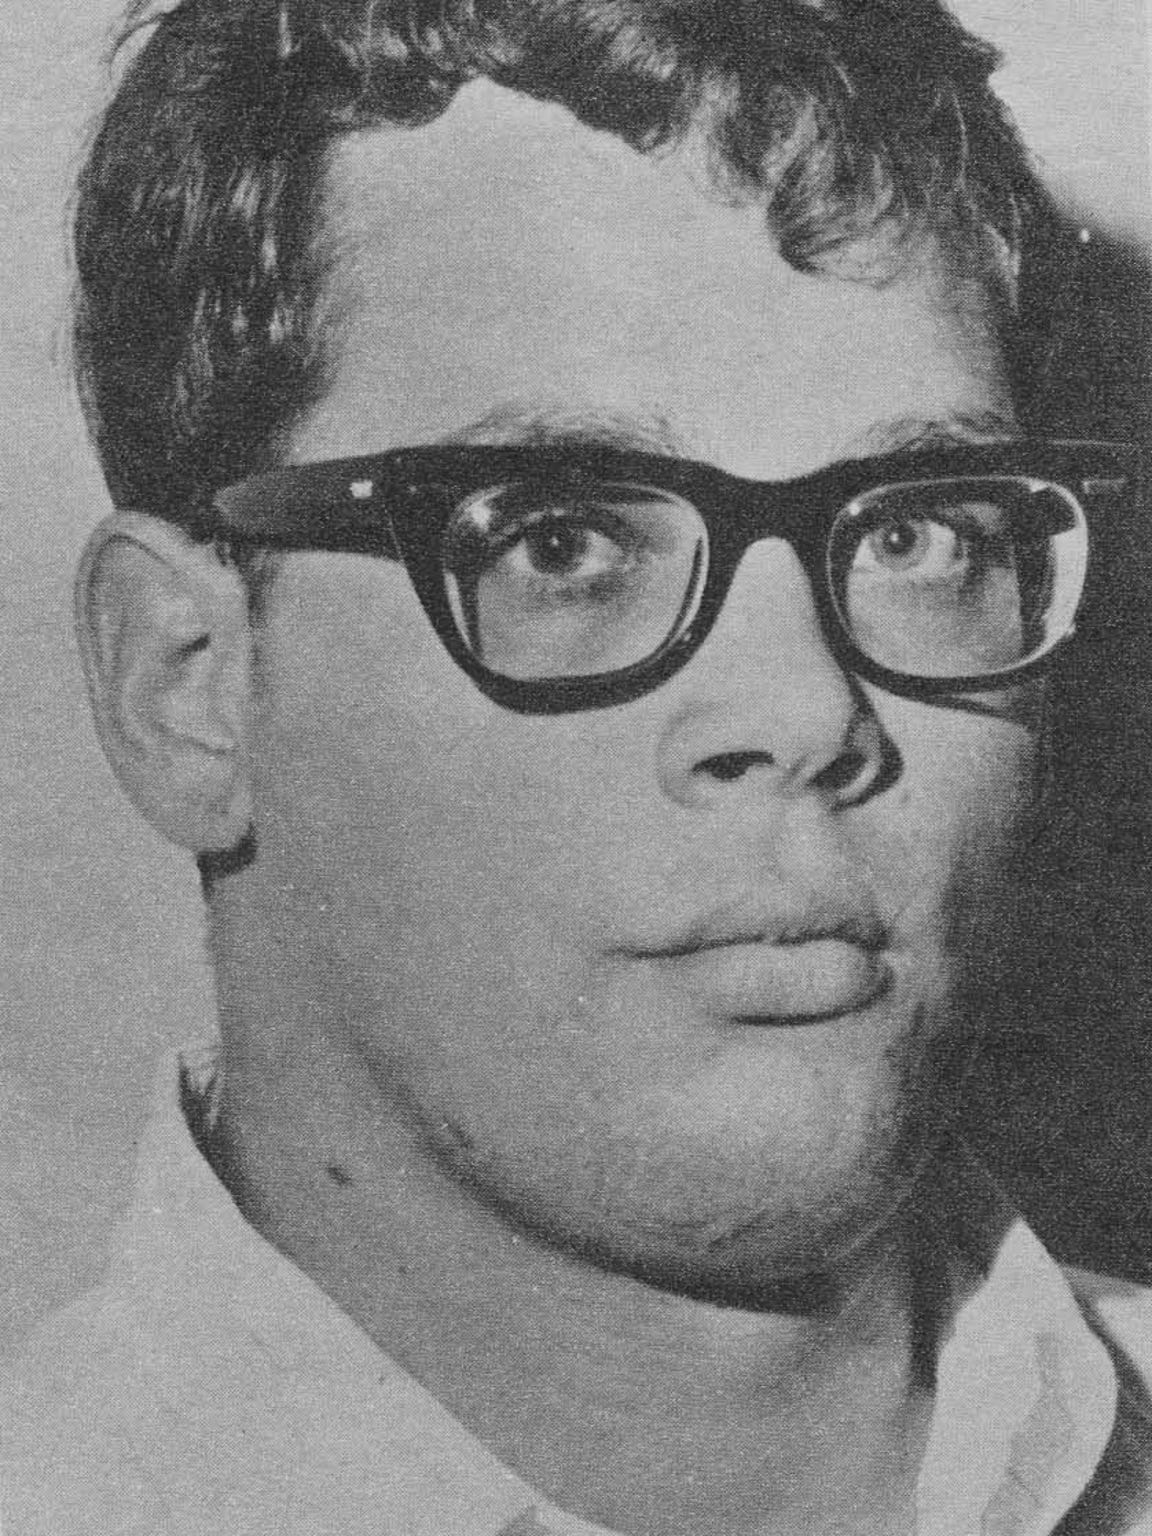 George E. Reck, then 19, was shot four times as he lay on the floor of his father's pharmacy in Hamburg Township in January 1967.